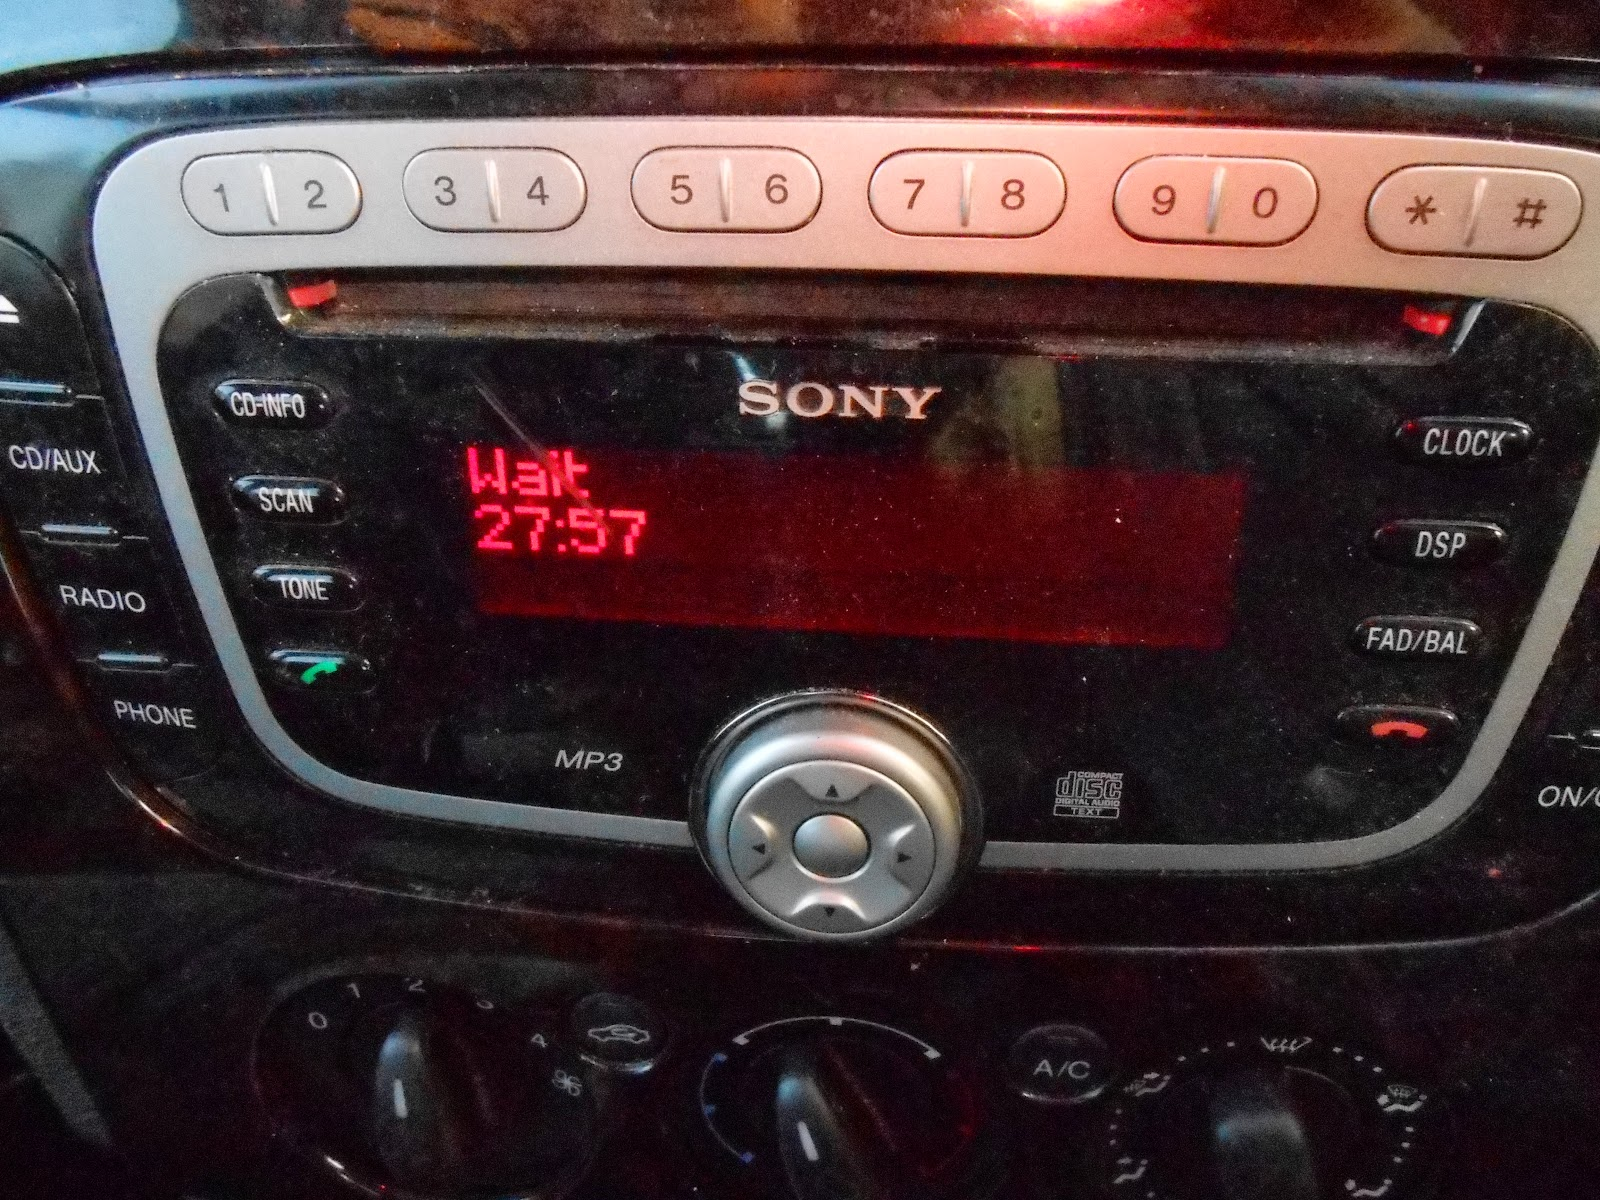 sony ford focus radio cd player key code